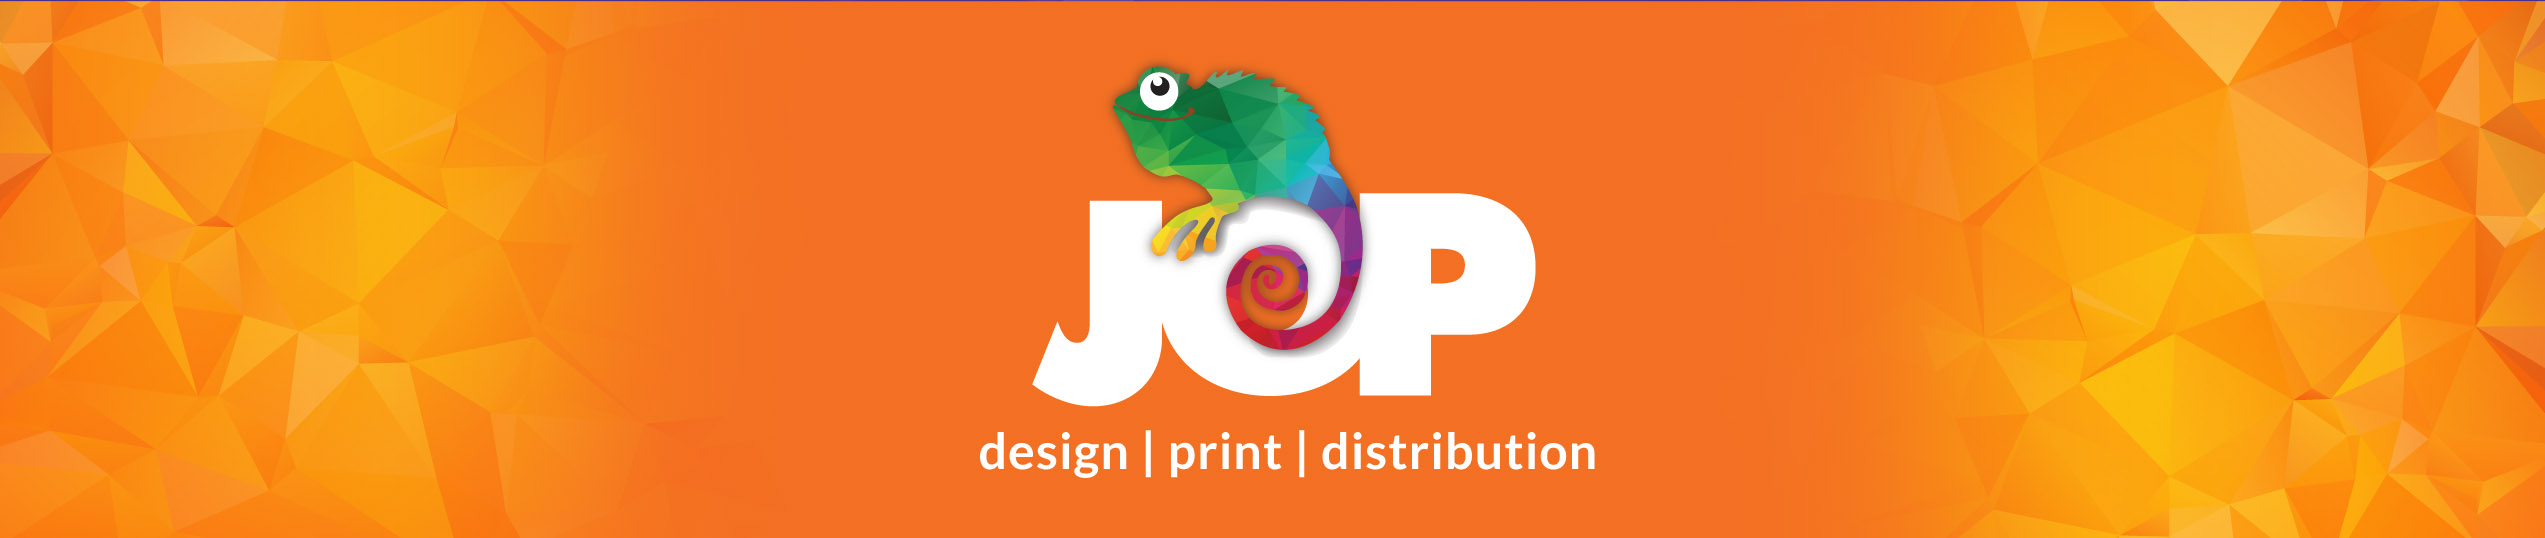 JOP design print distribution. Ollie the Chameleon